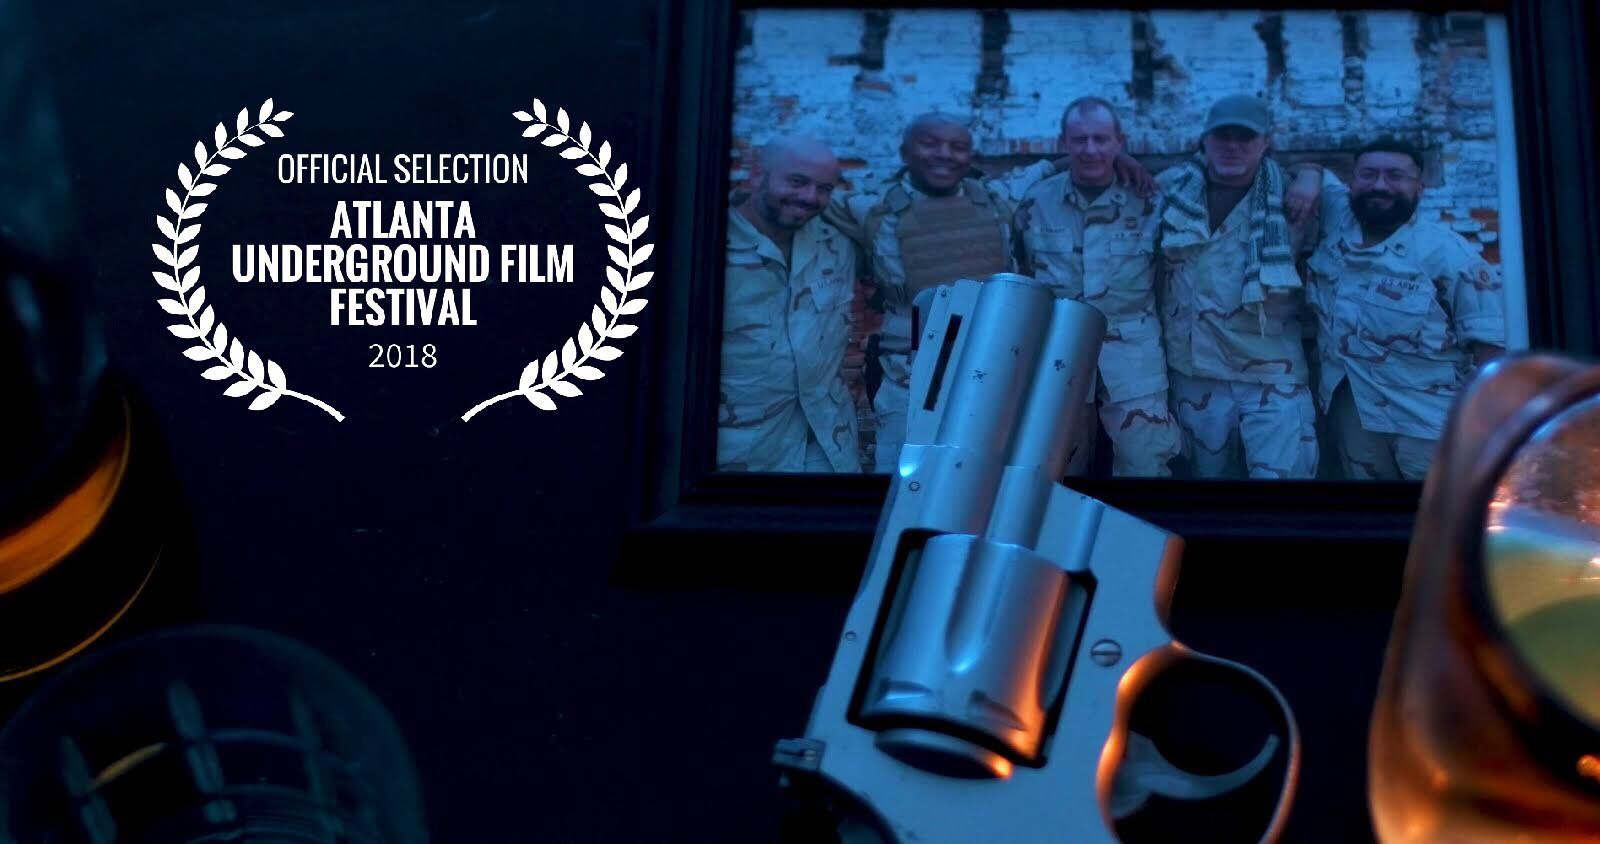 Written/Directed: T.C. Barrera Produced: William McClure, T.C. Barrera   Director of Photography/Editor: Ben Wallace